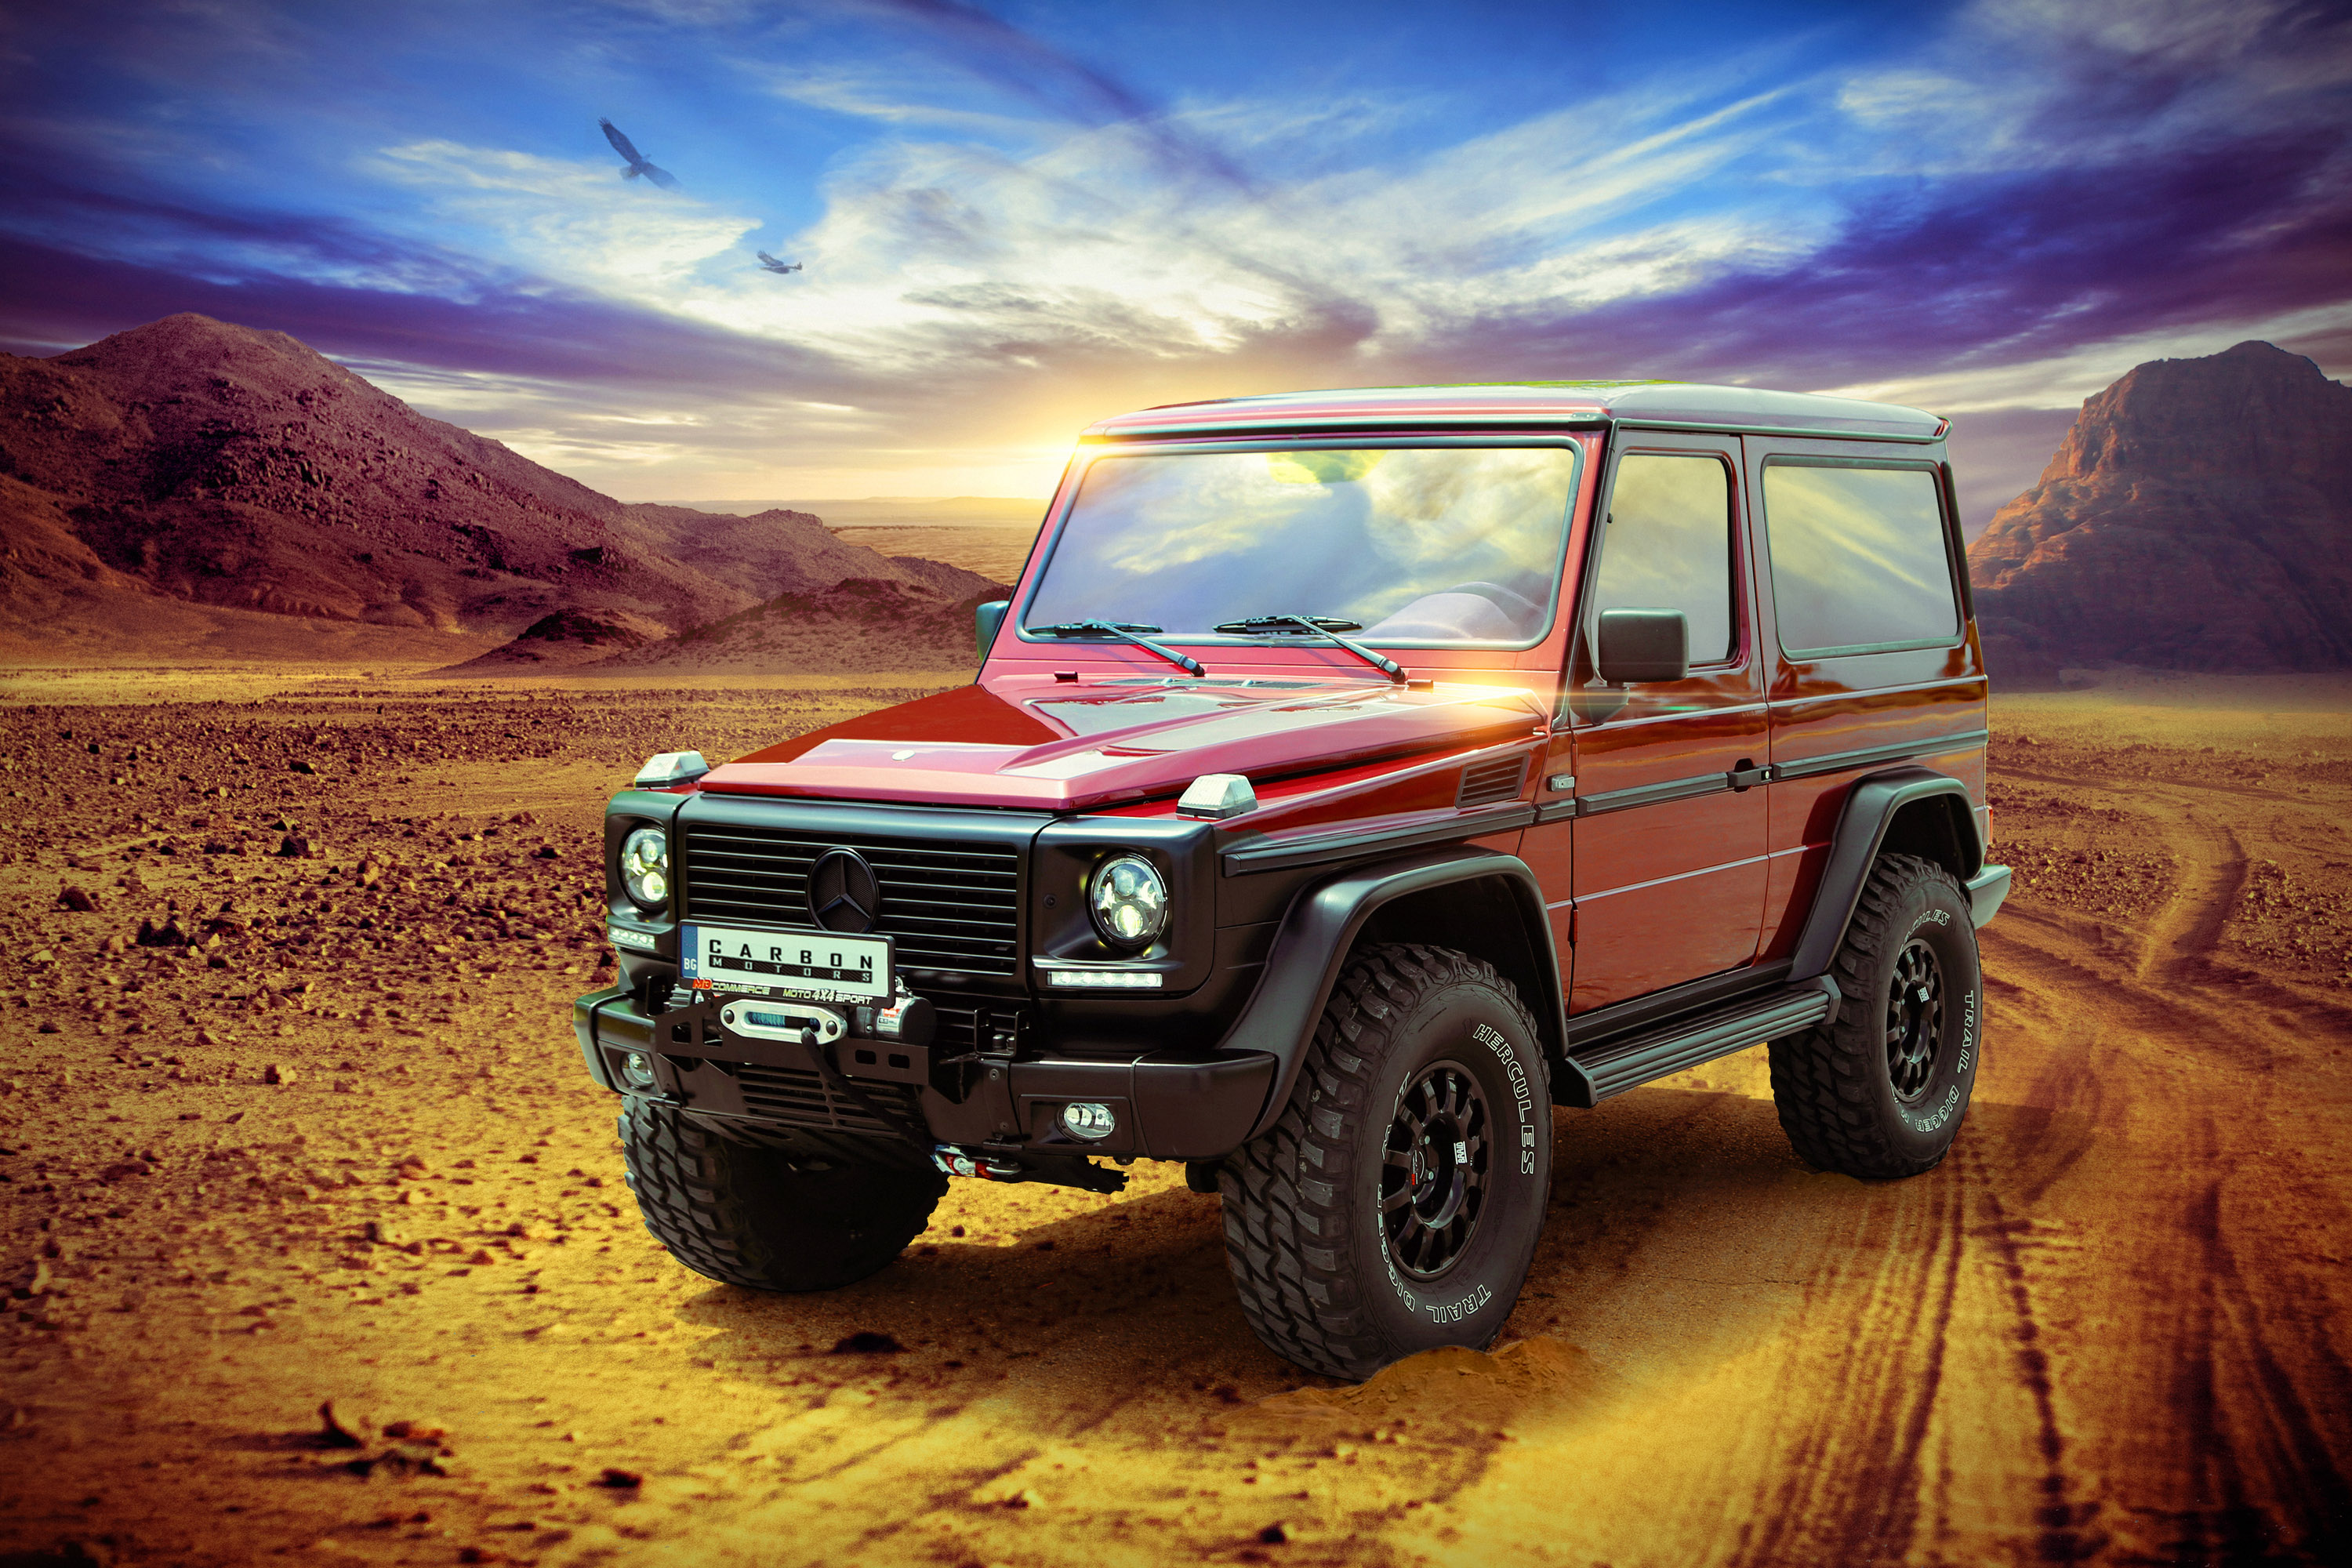 Carbon motors introduces tuned mercedes benz g500 w463 for Mercedes benz g 500